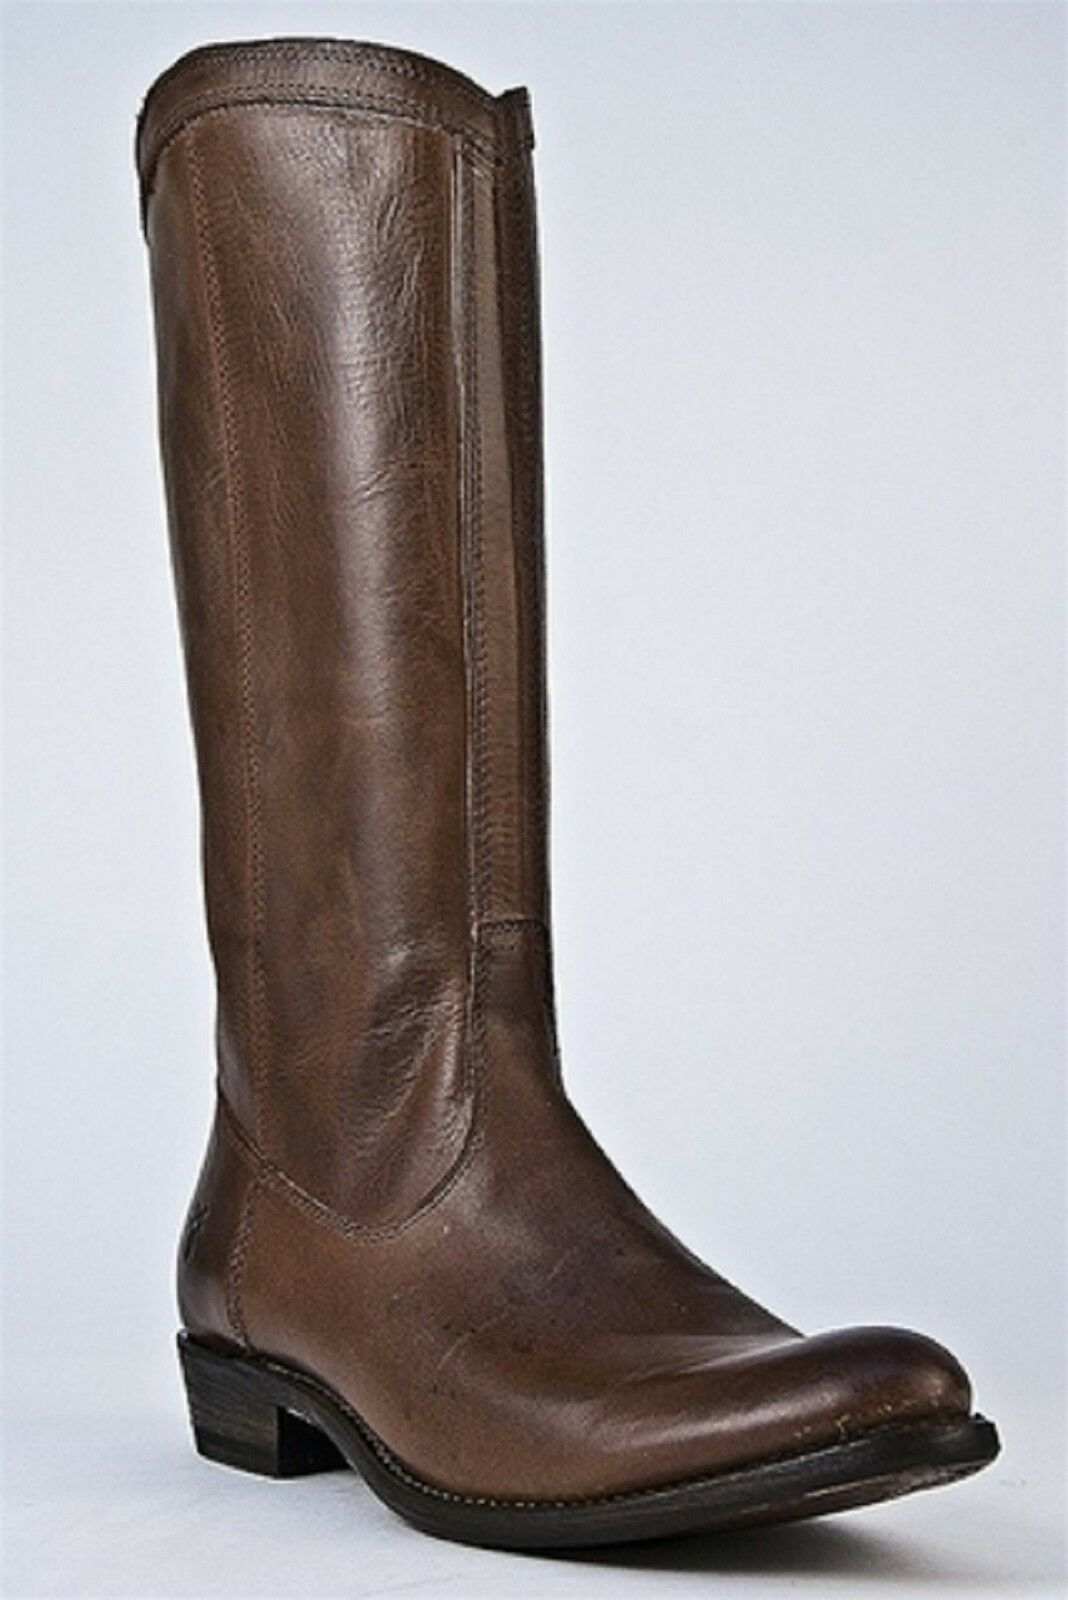 Frye RIDER PULL ON Leather Fashion Mid-Calf Boots Cognac Women Riding New